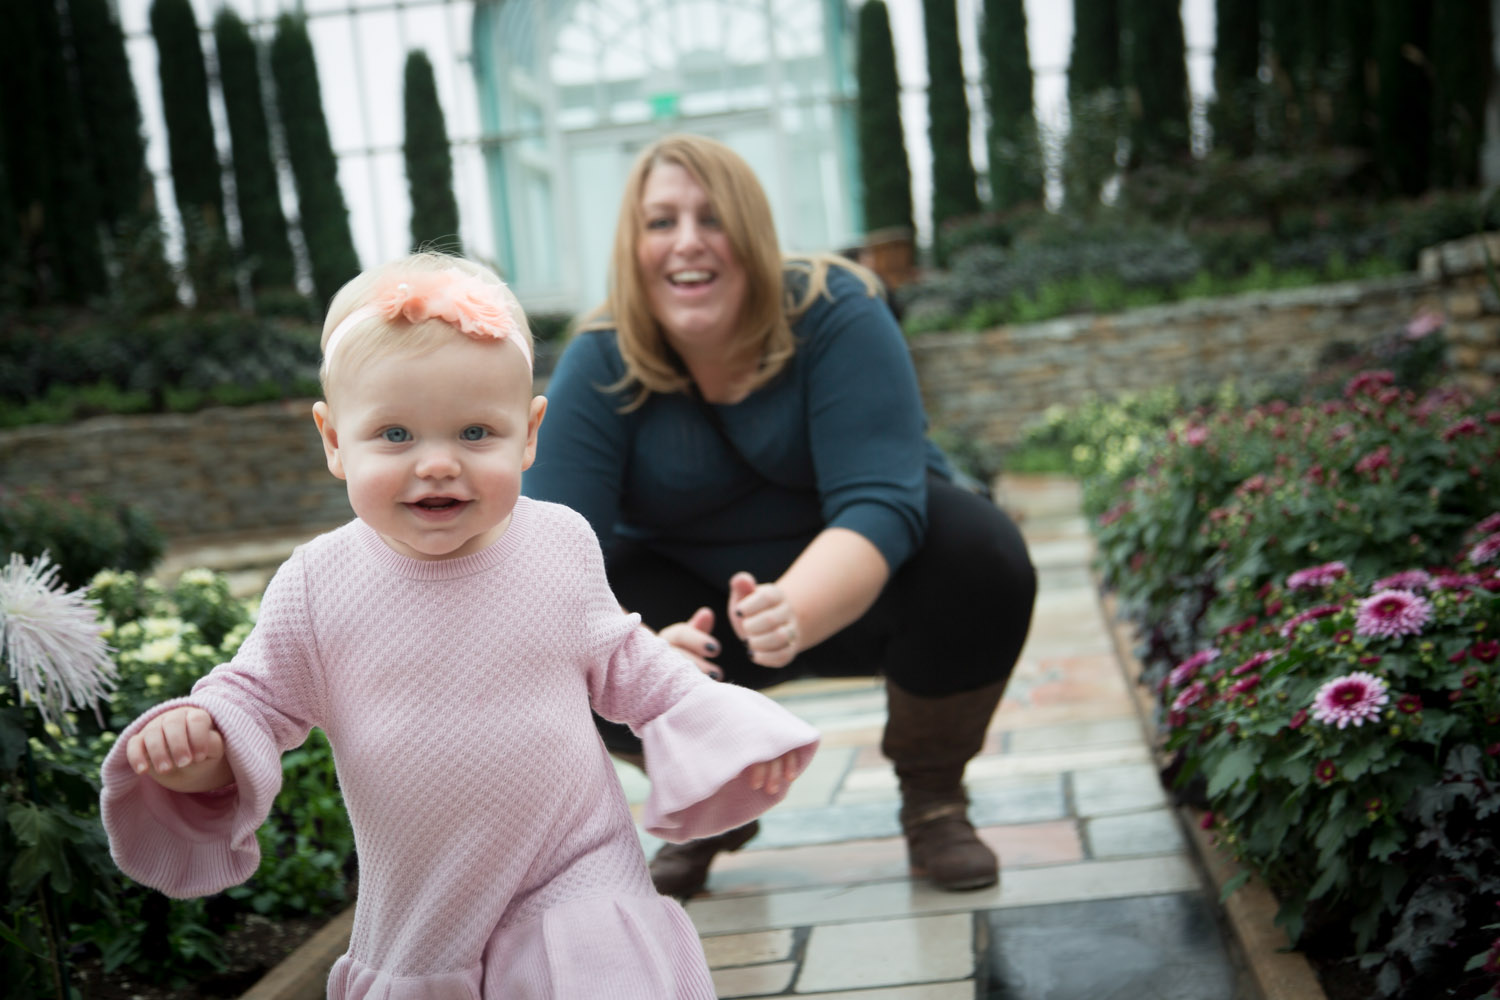 01-como-conservatory-family-photography-session-one-year-old-mom-and-daughter-busy-girl-mahonen-photography-01.jpg